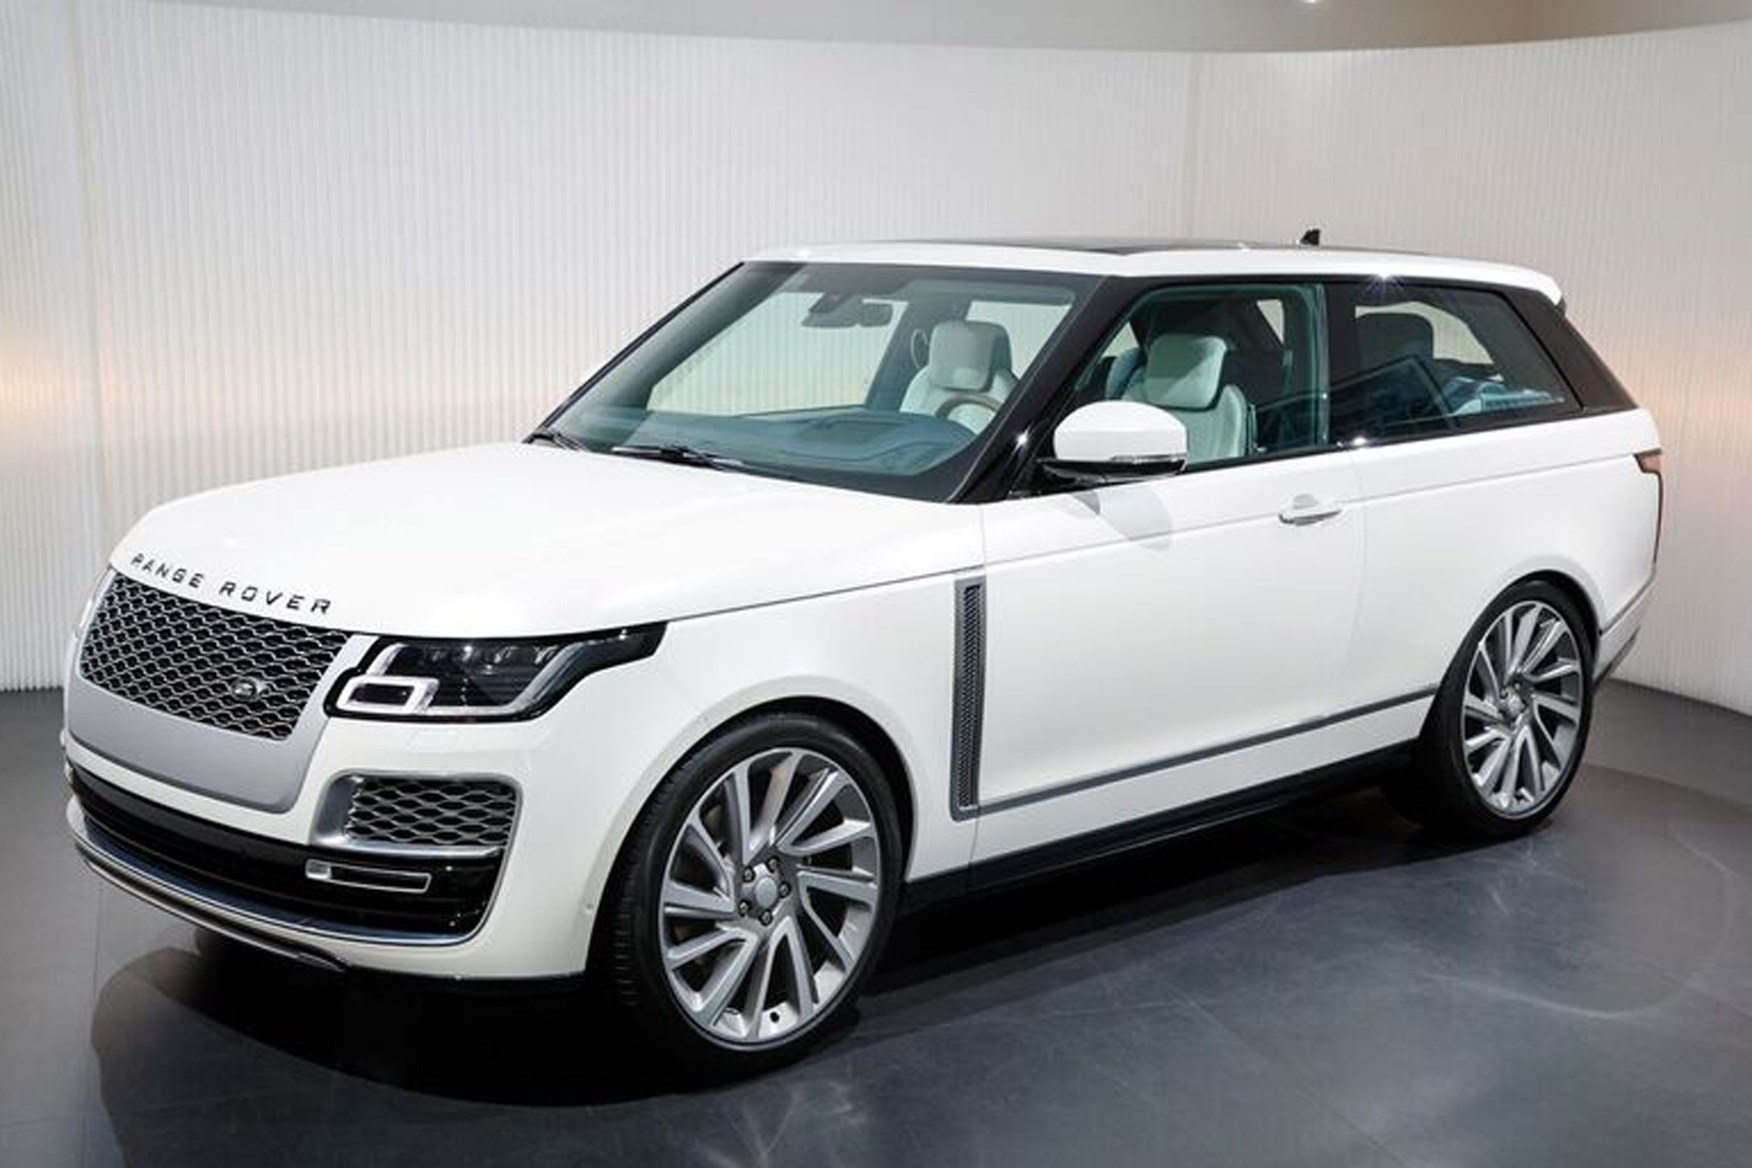 Land Rover Special Vehicle Operations introduce the Range Rover SV Coupe